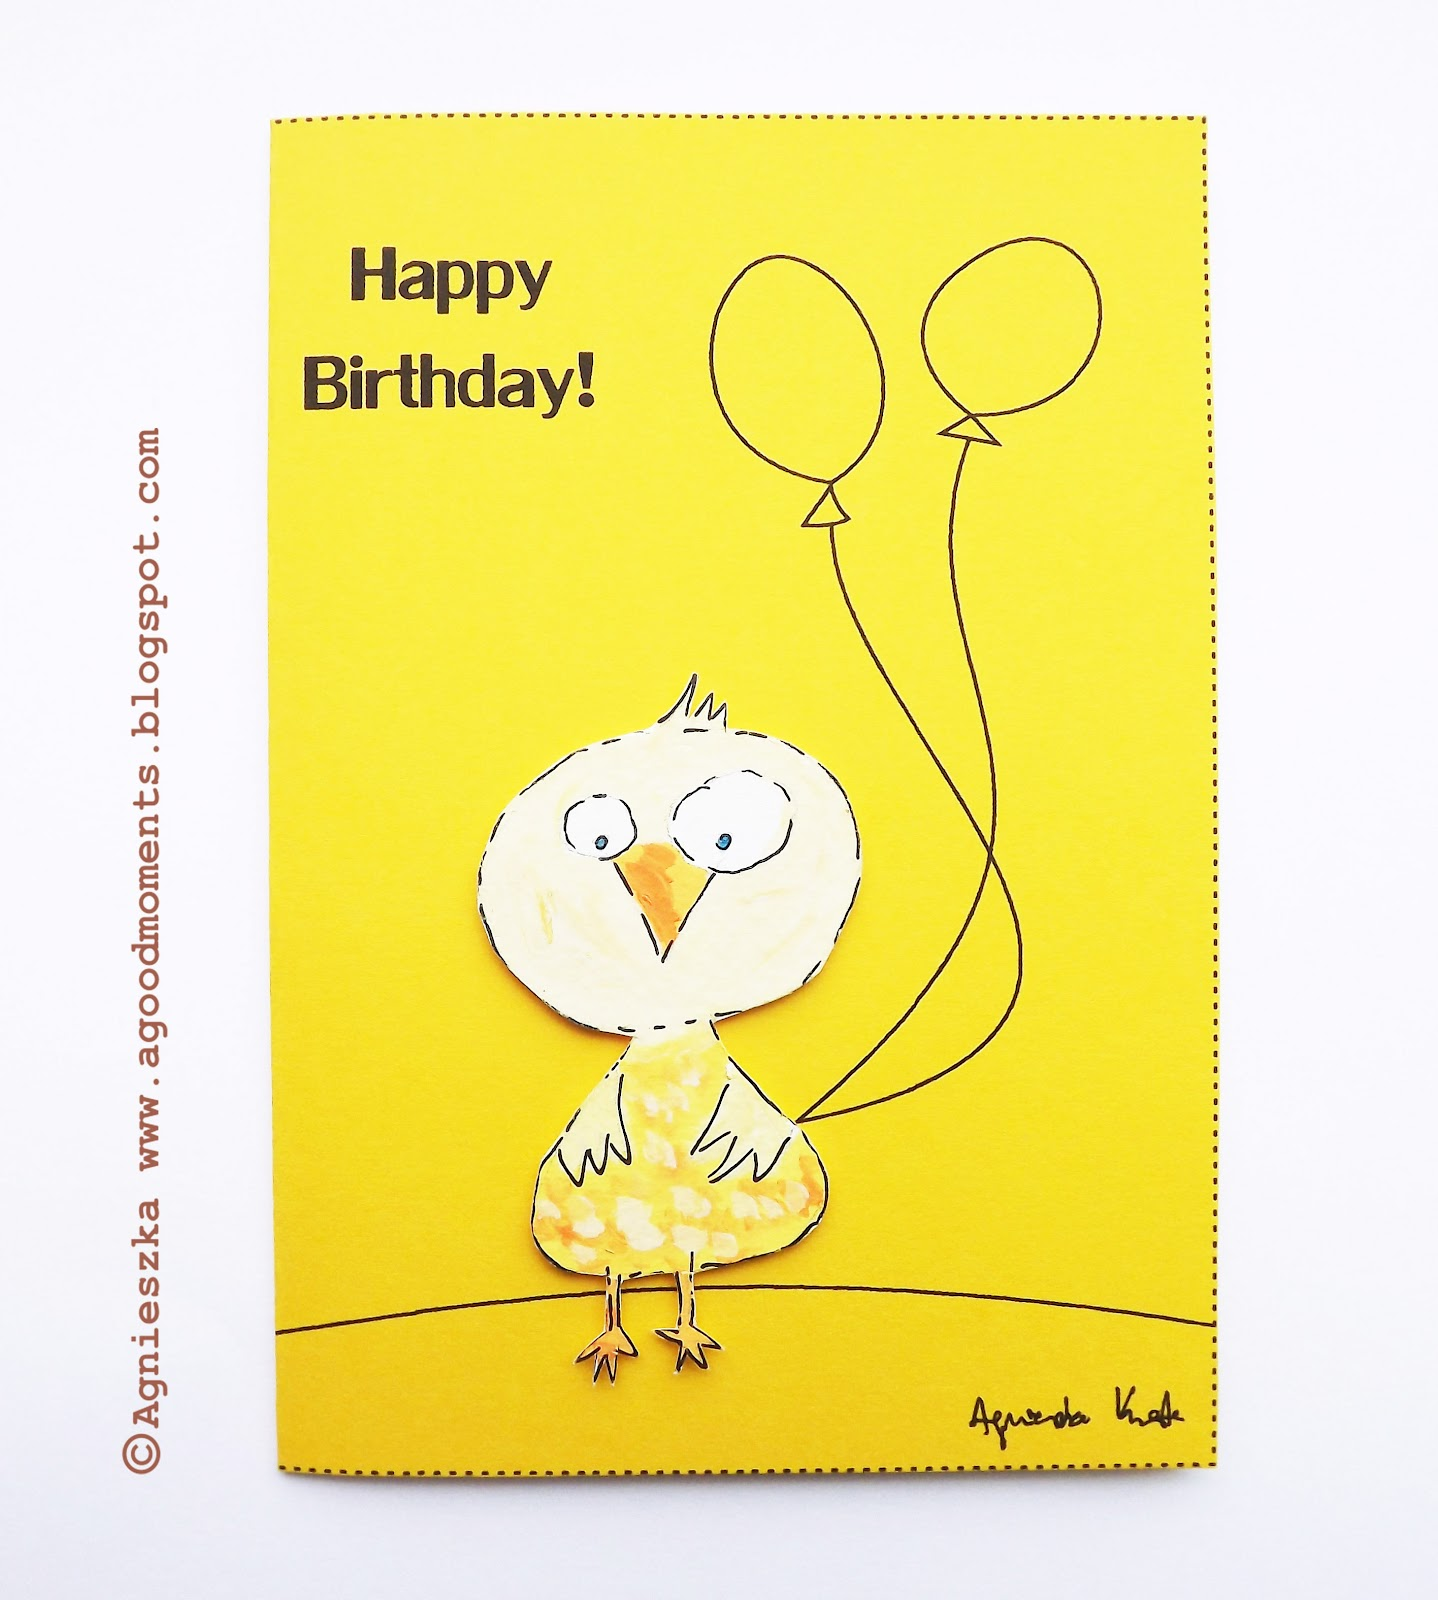 Good Moments Cartoon Chicken Birthday Card Kartka Urodzinowa Z